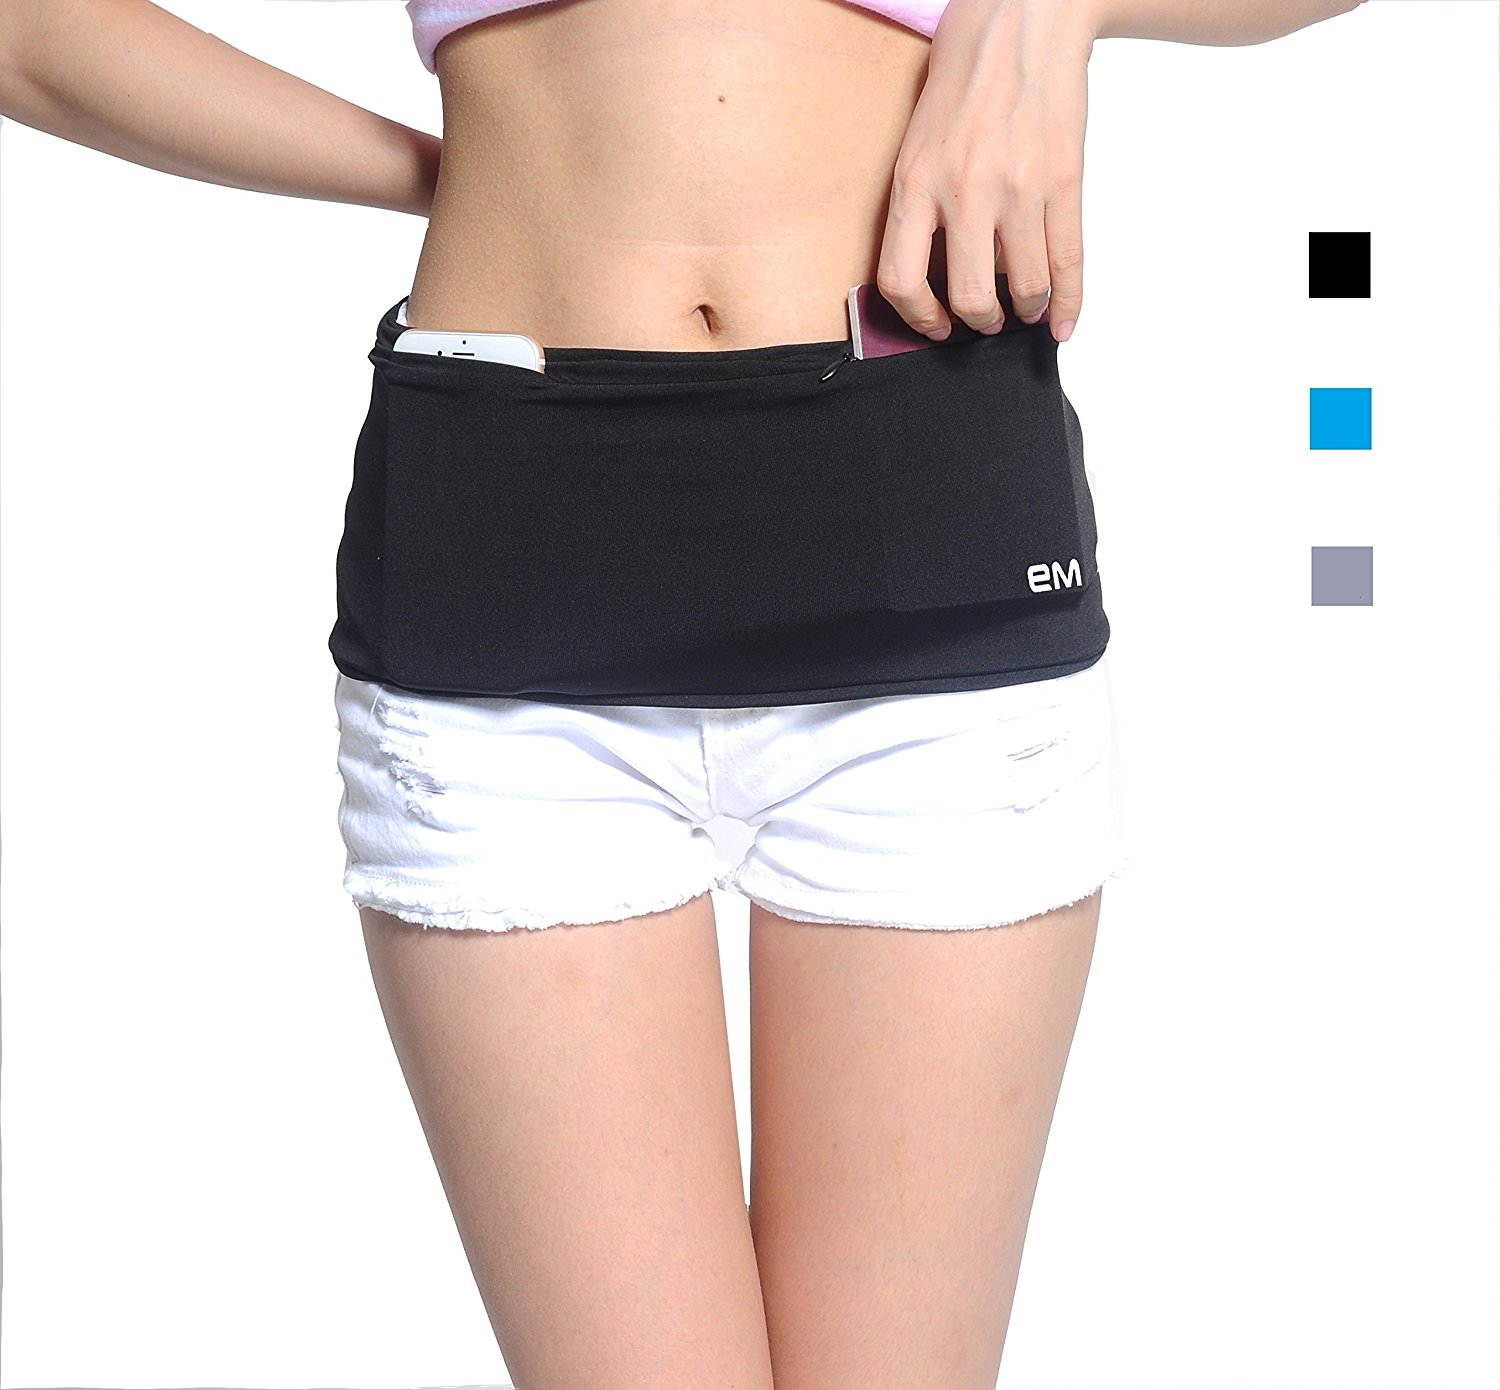 Eazymate Fashion Running Money Belt